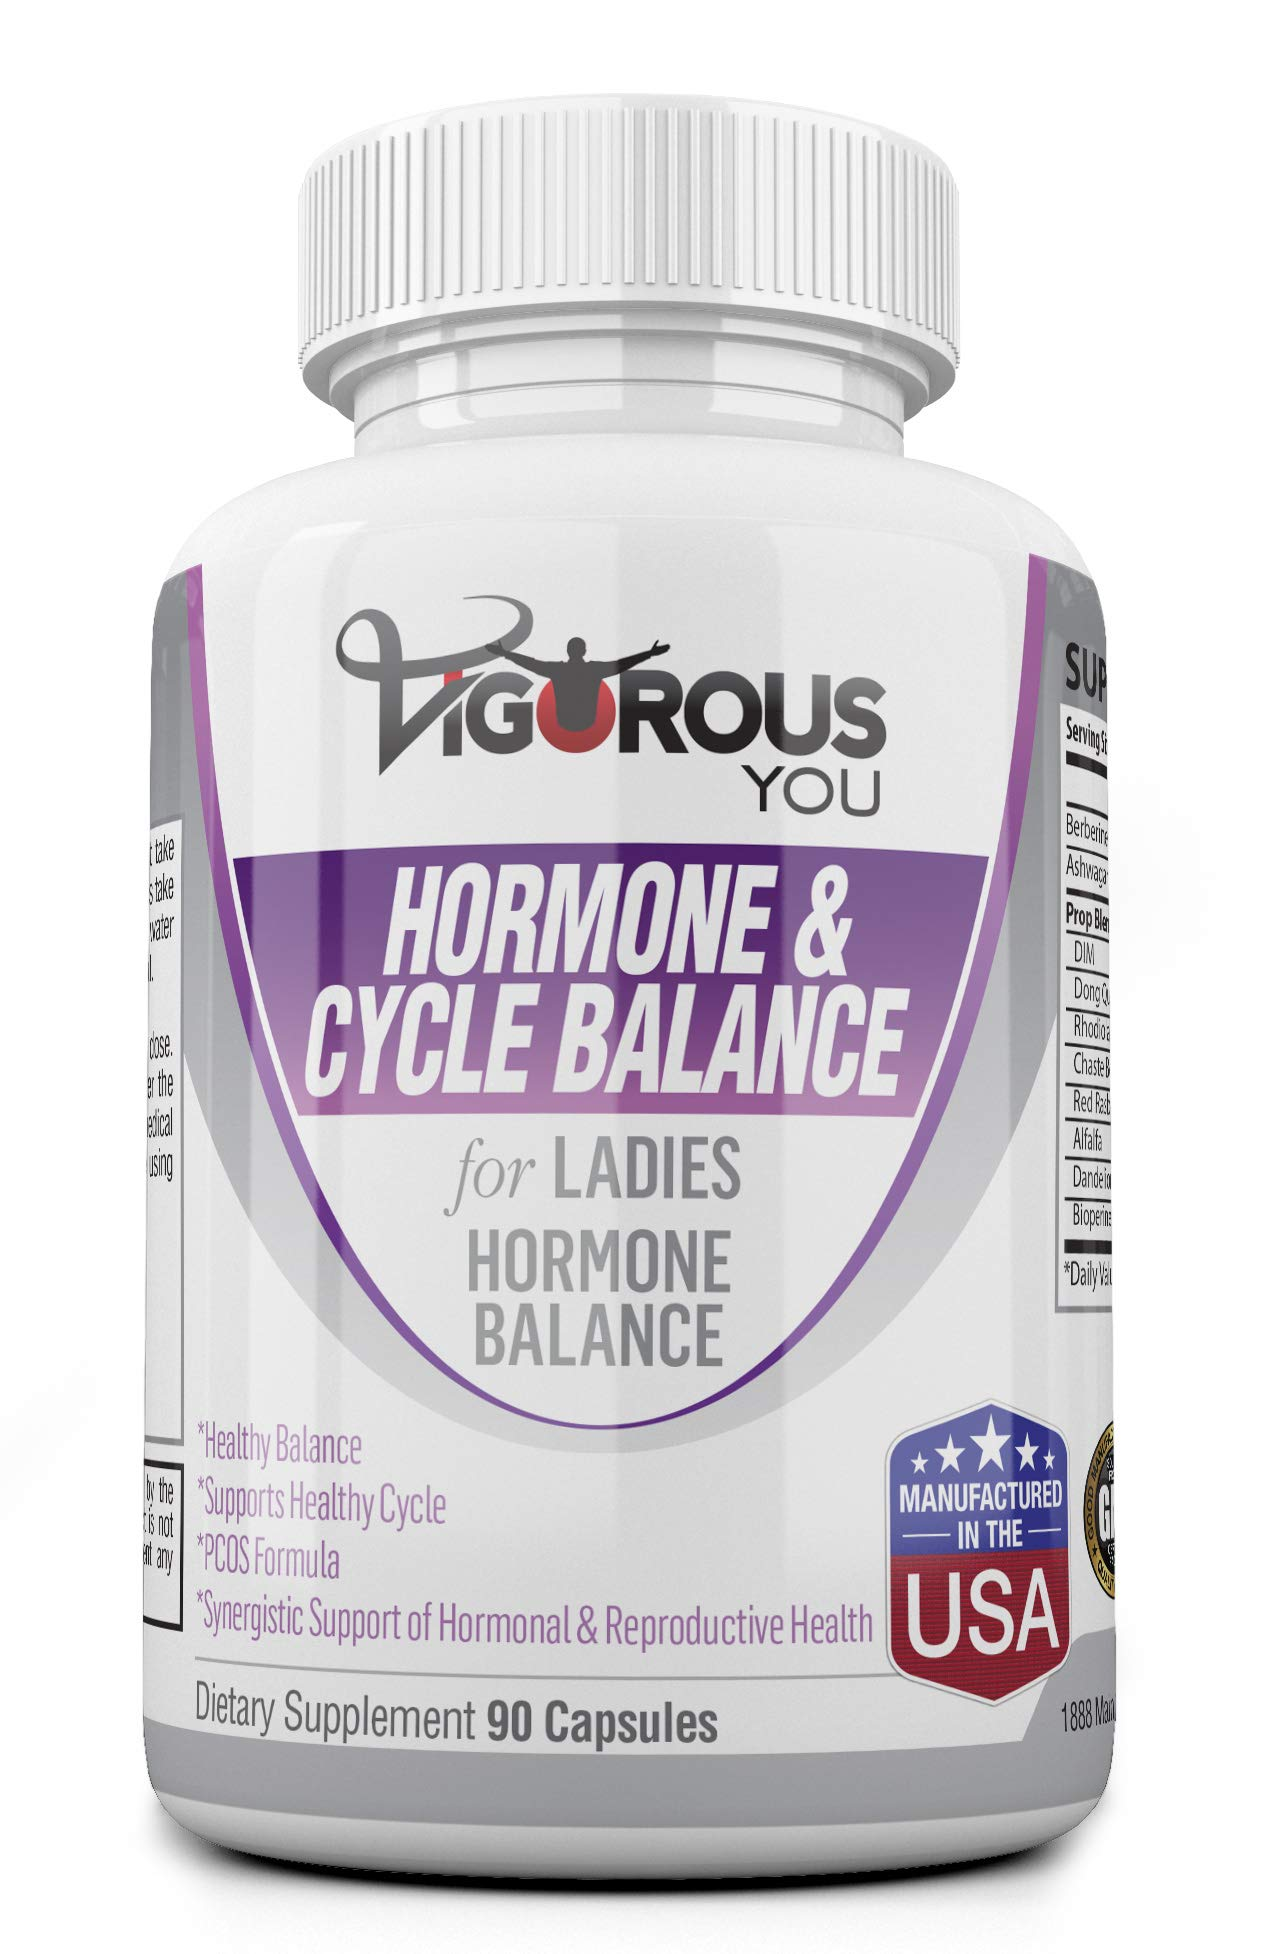 Hormone Balance for Women Ayurvedic. PCOS. Supports Reproductive Health, PMS Relief, Menopause Relief, DIM, Dong Quai, Ashwagandha. Berberine, Chasteberry, 1,500 MG